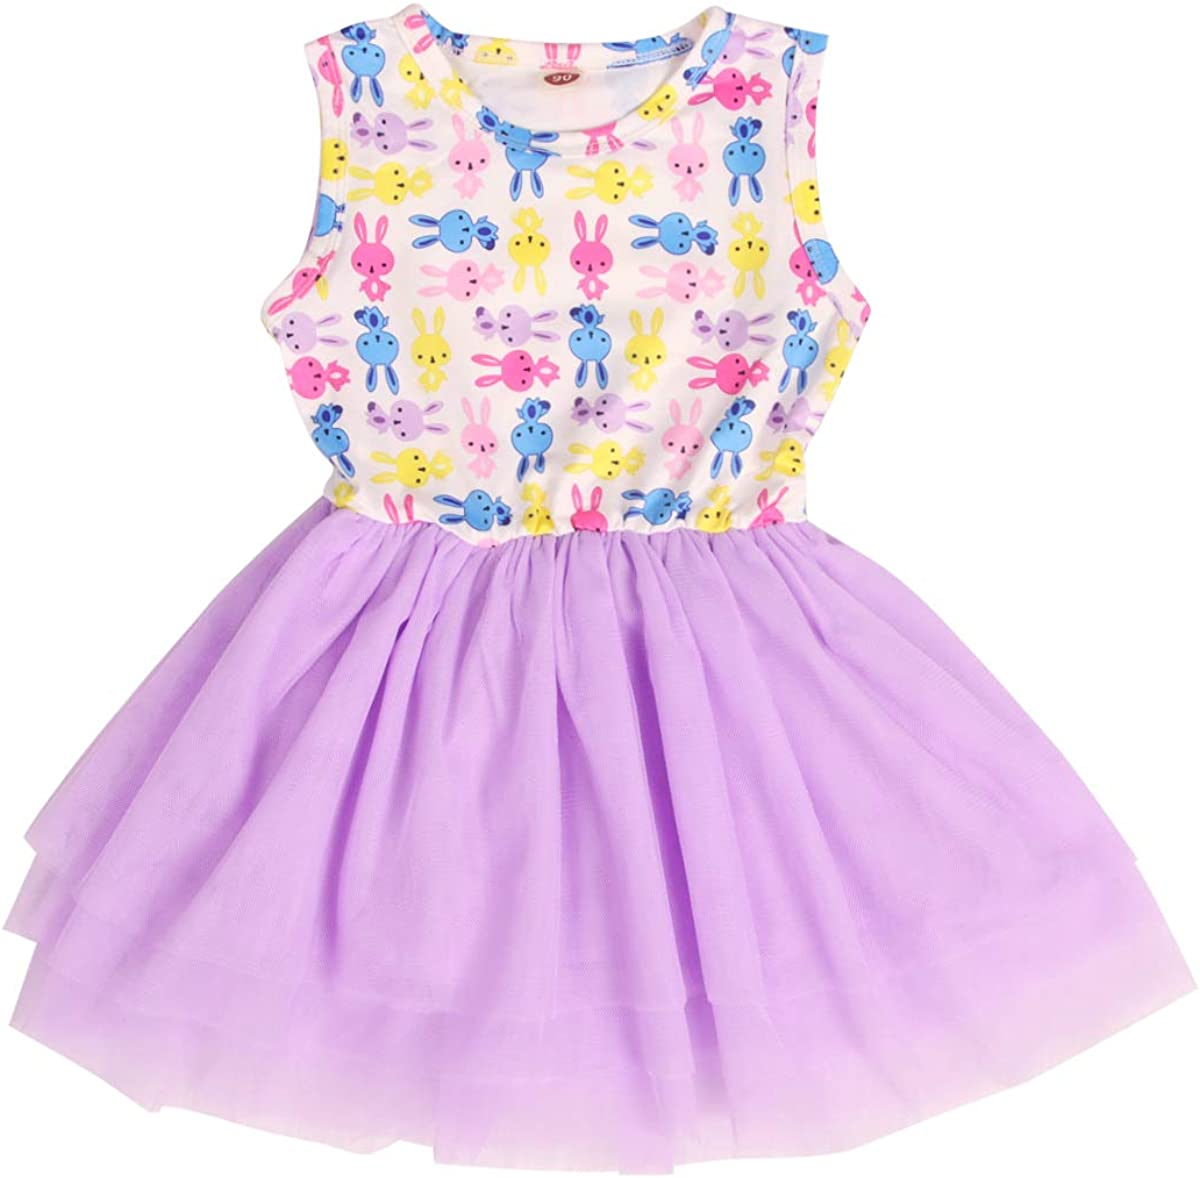 Super-cheap CM WODRO Max 46% OFF Toddler Baby Girl Tu Bunny Outfit Easter Sleeveless